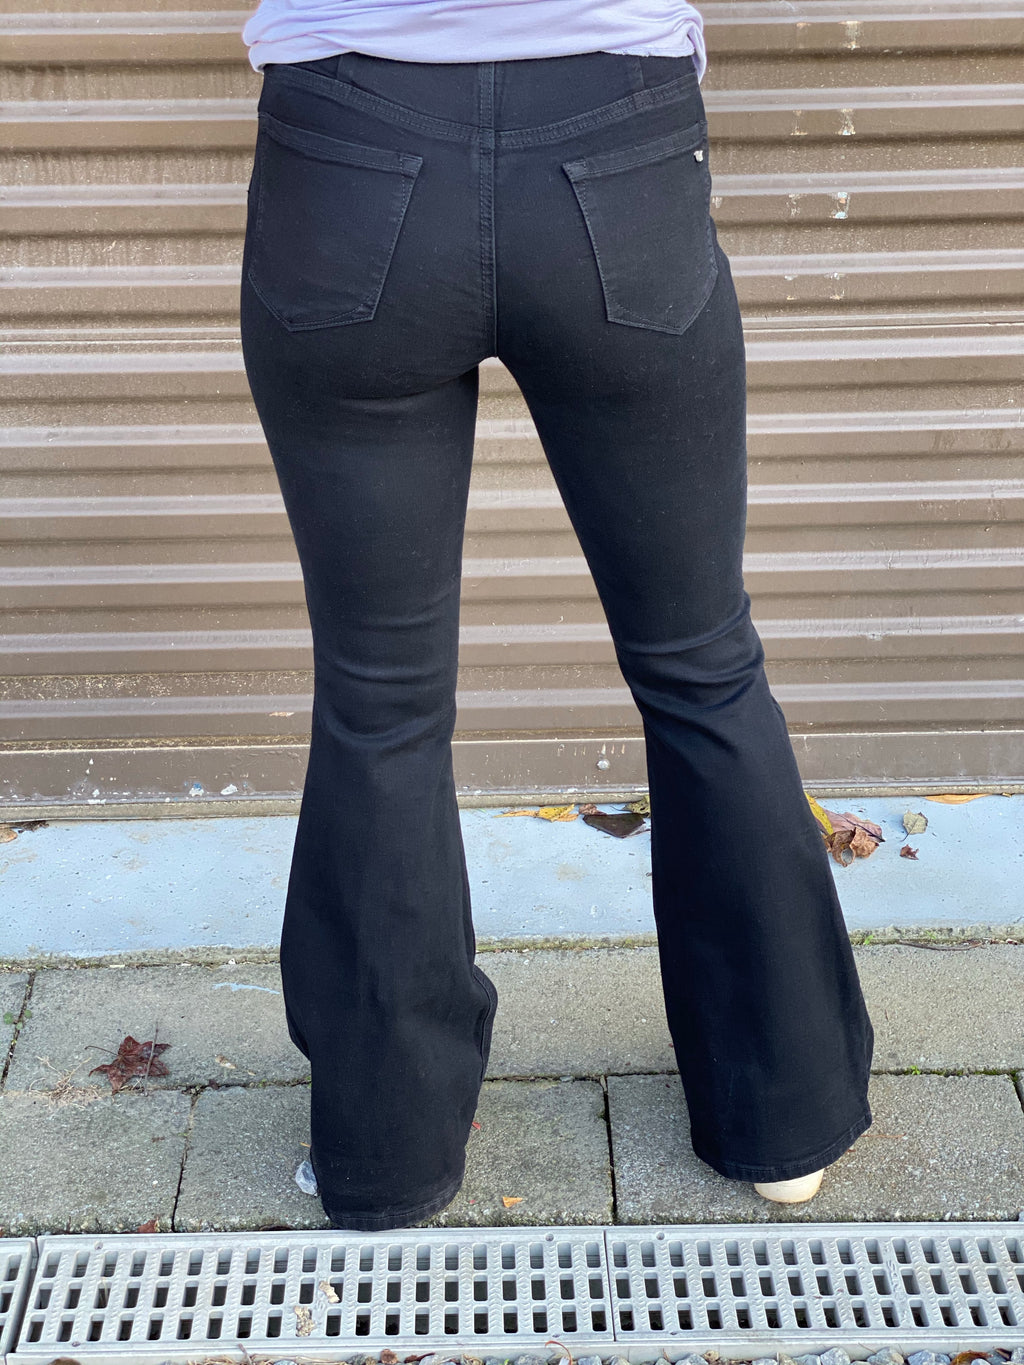 Black Beauty Bellbottoms